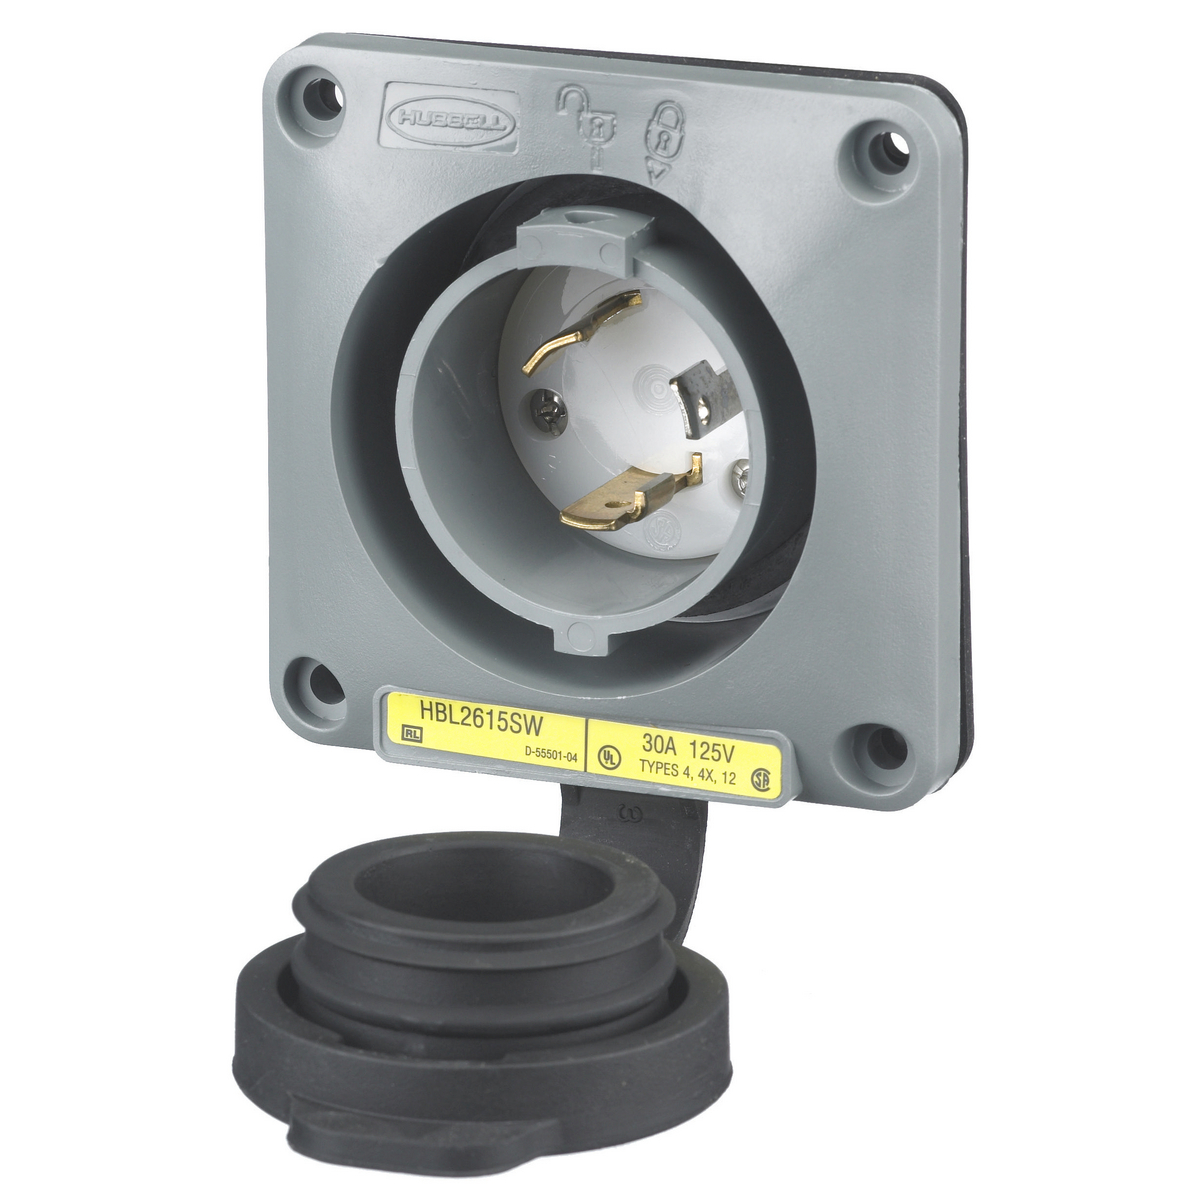 Hubbell HBL2615-SW 30A 125V Twist-Lock Watertight SAFETY-SHROUD Gray VALOX Flanged Inlet